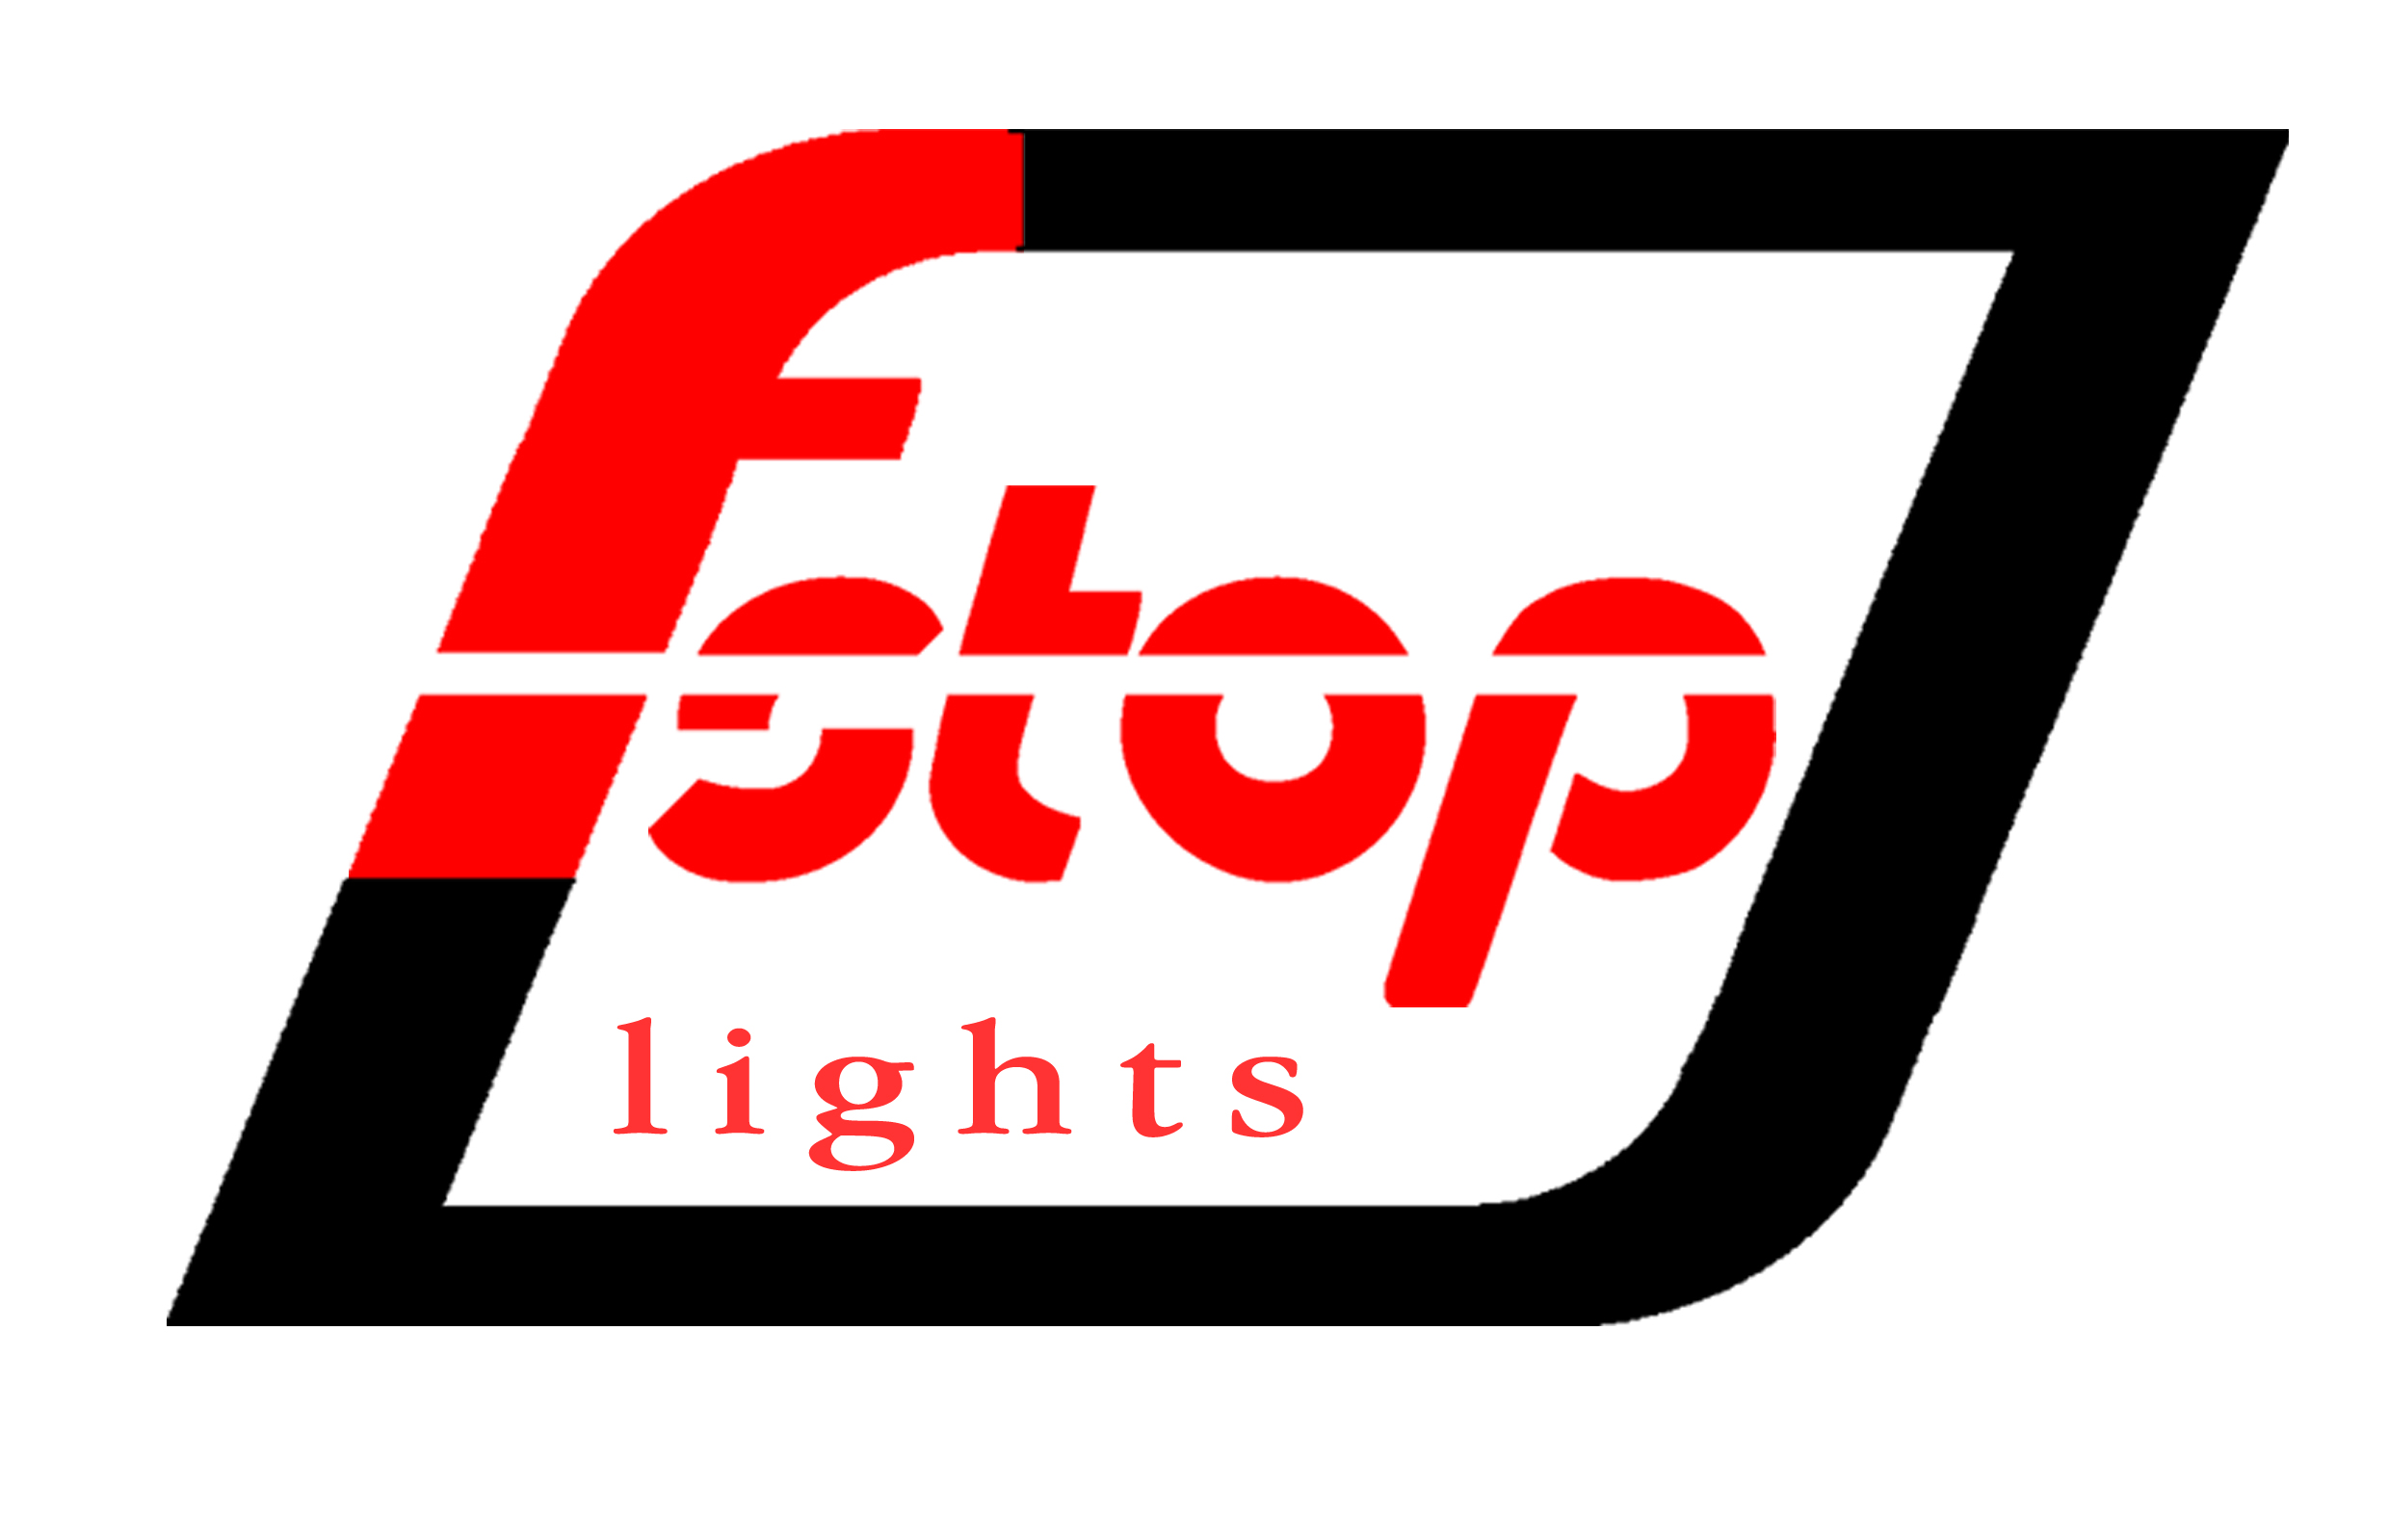 Fstop_Lights_Alternative.jpg